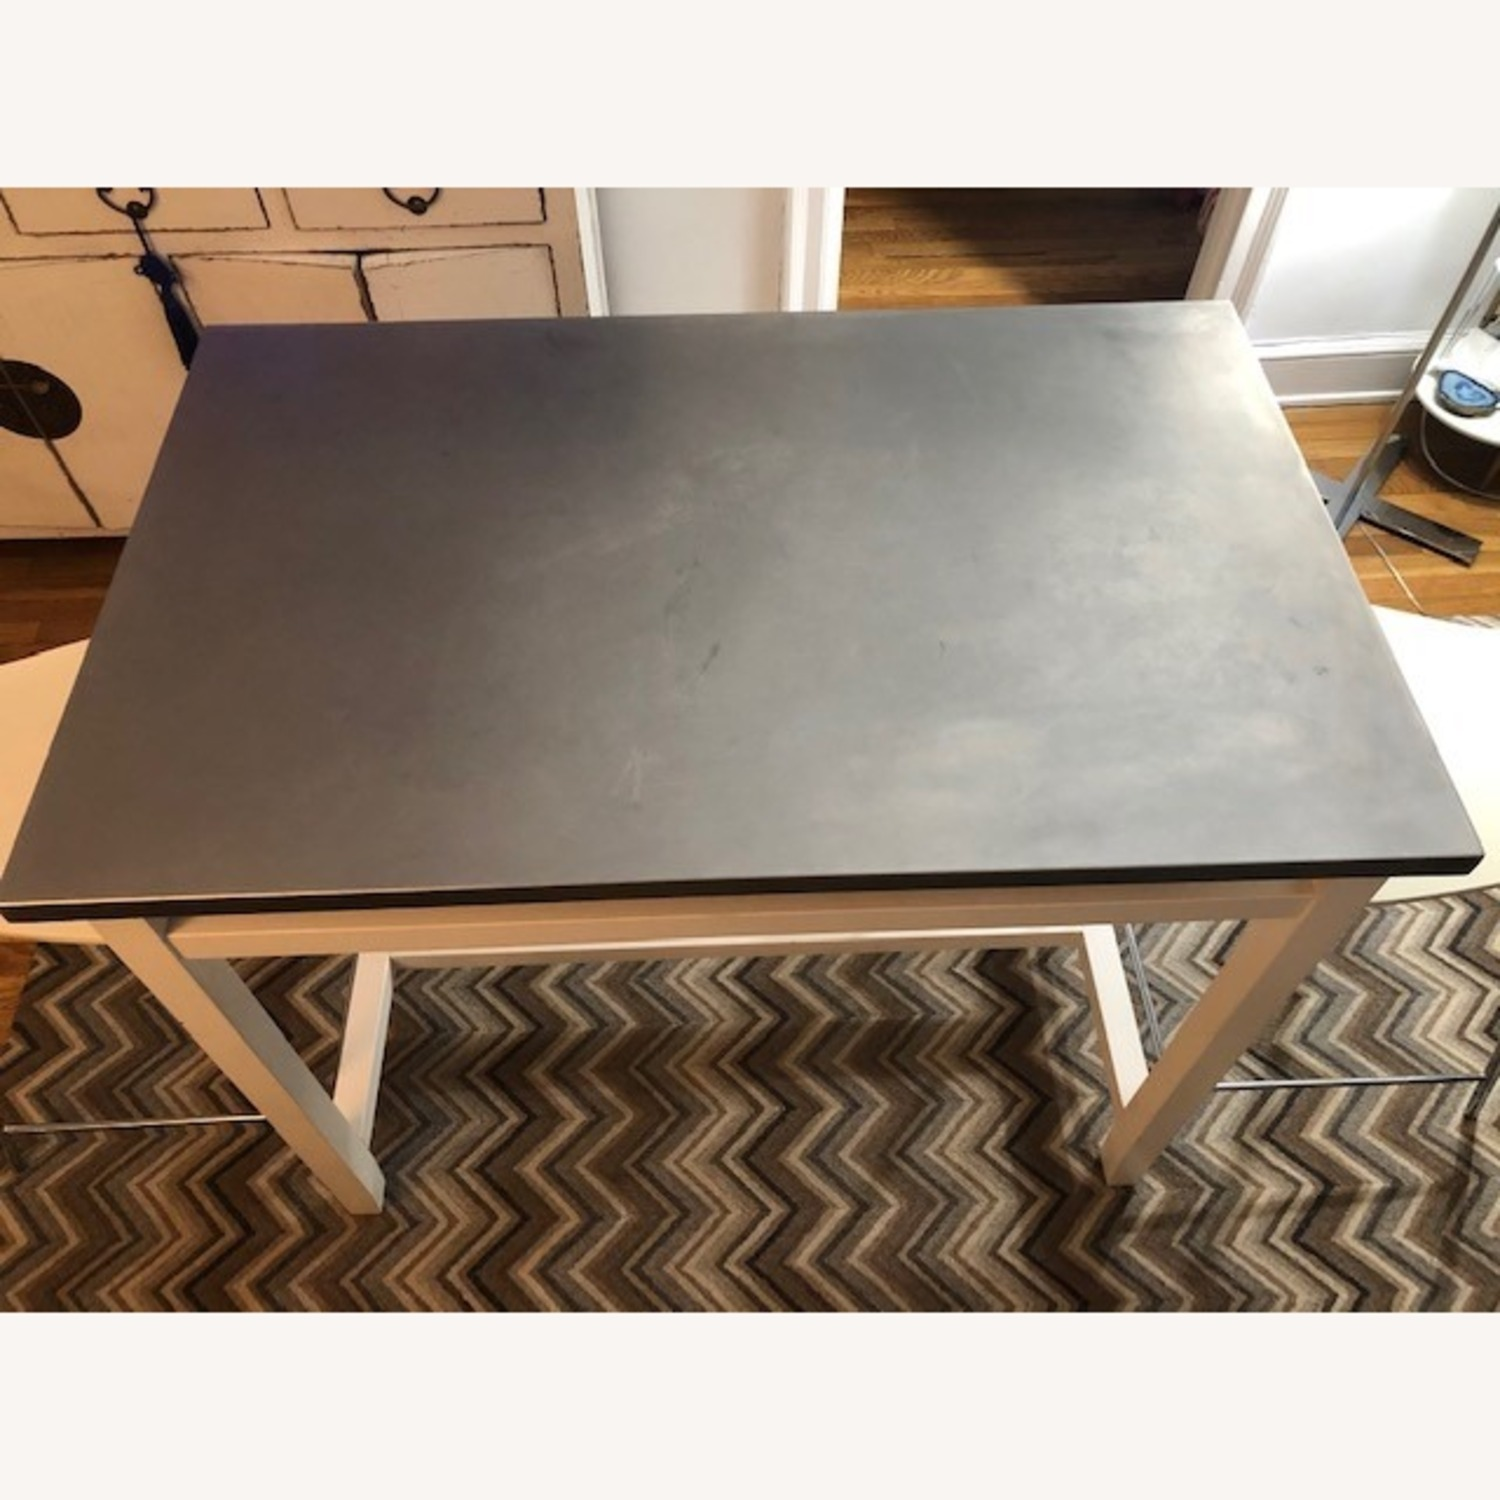 Crate & Barrel Stainless Steel High Top Table - image-2